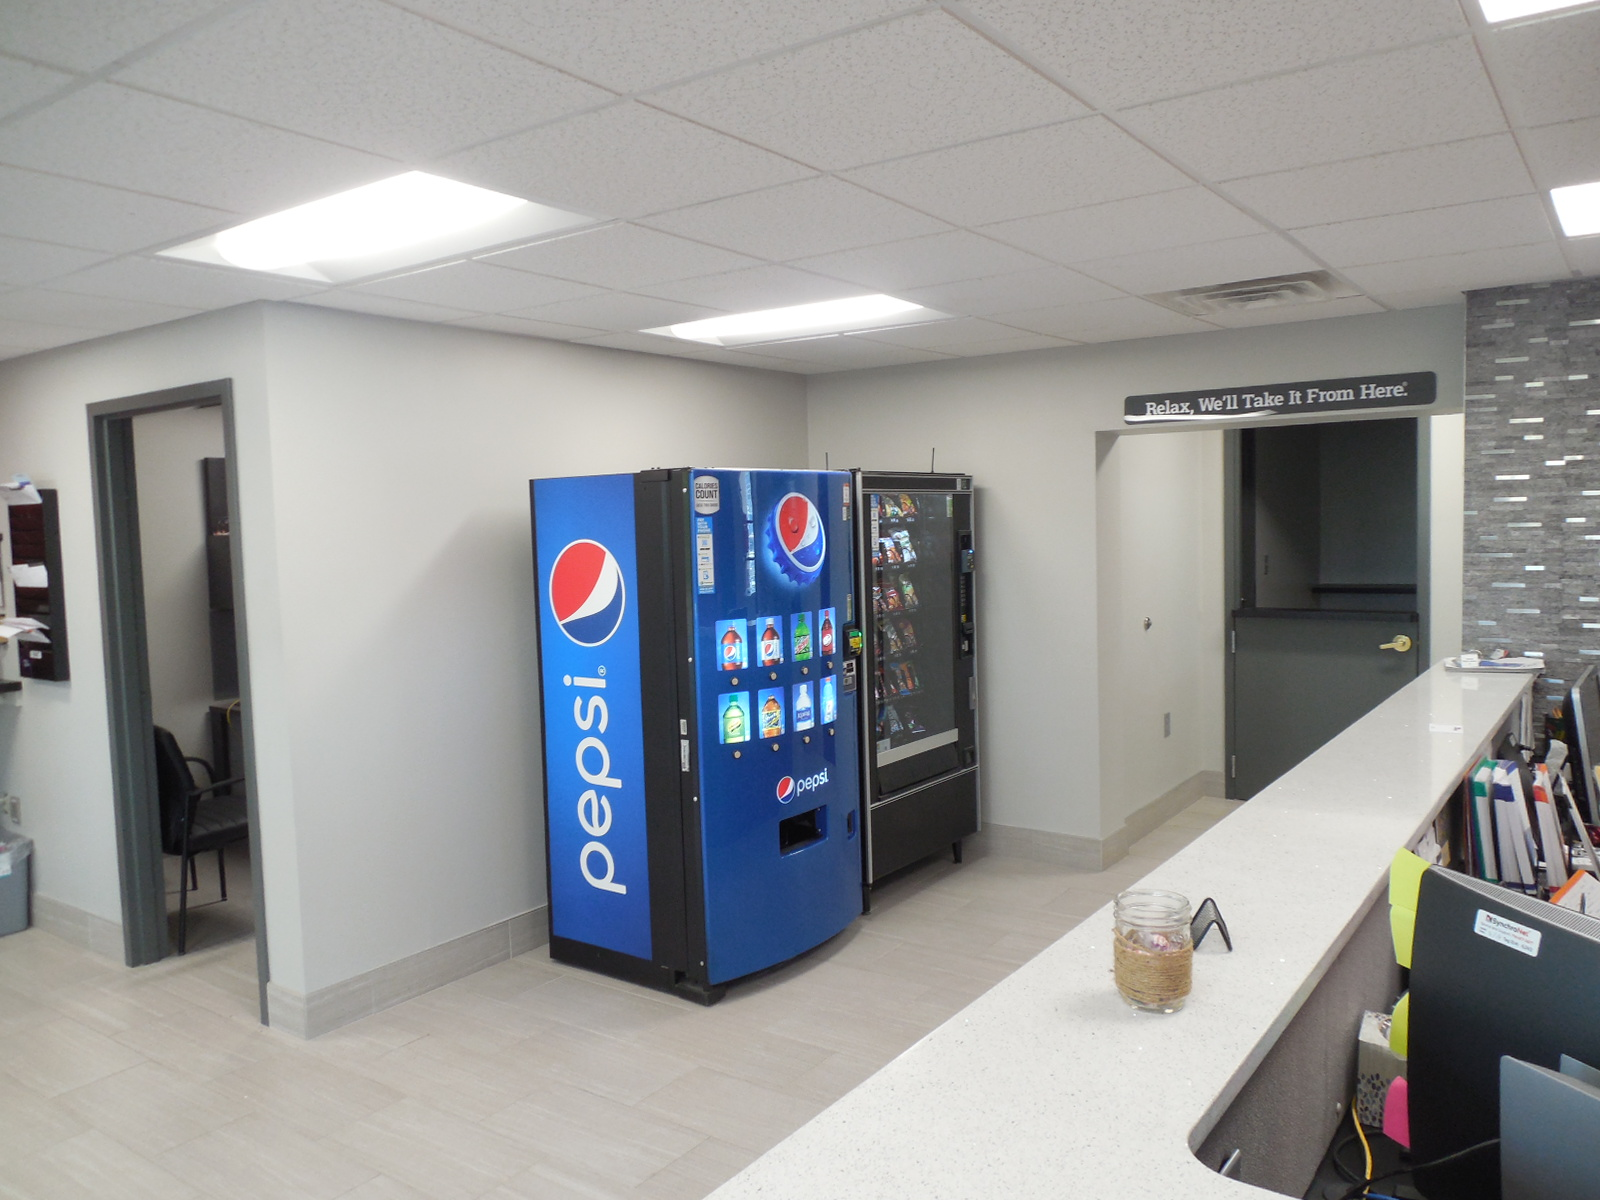 CARSTAR West Seneca: Customer Vending Machines